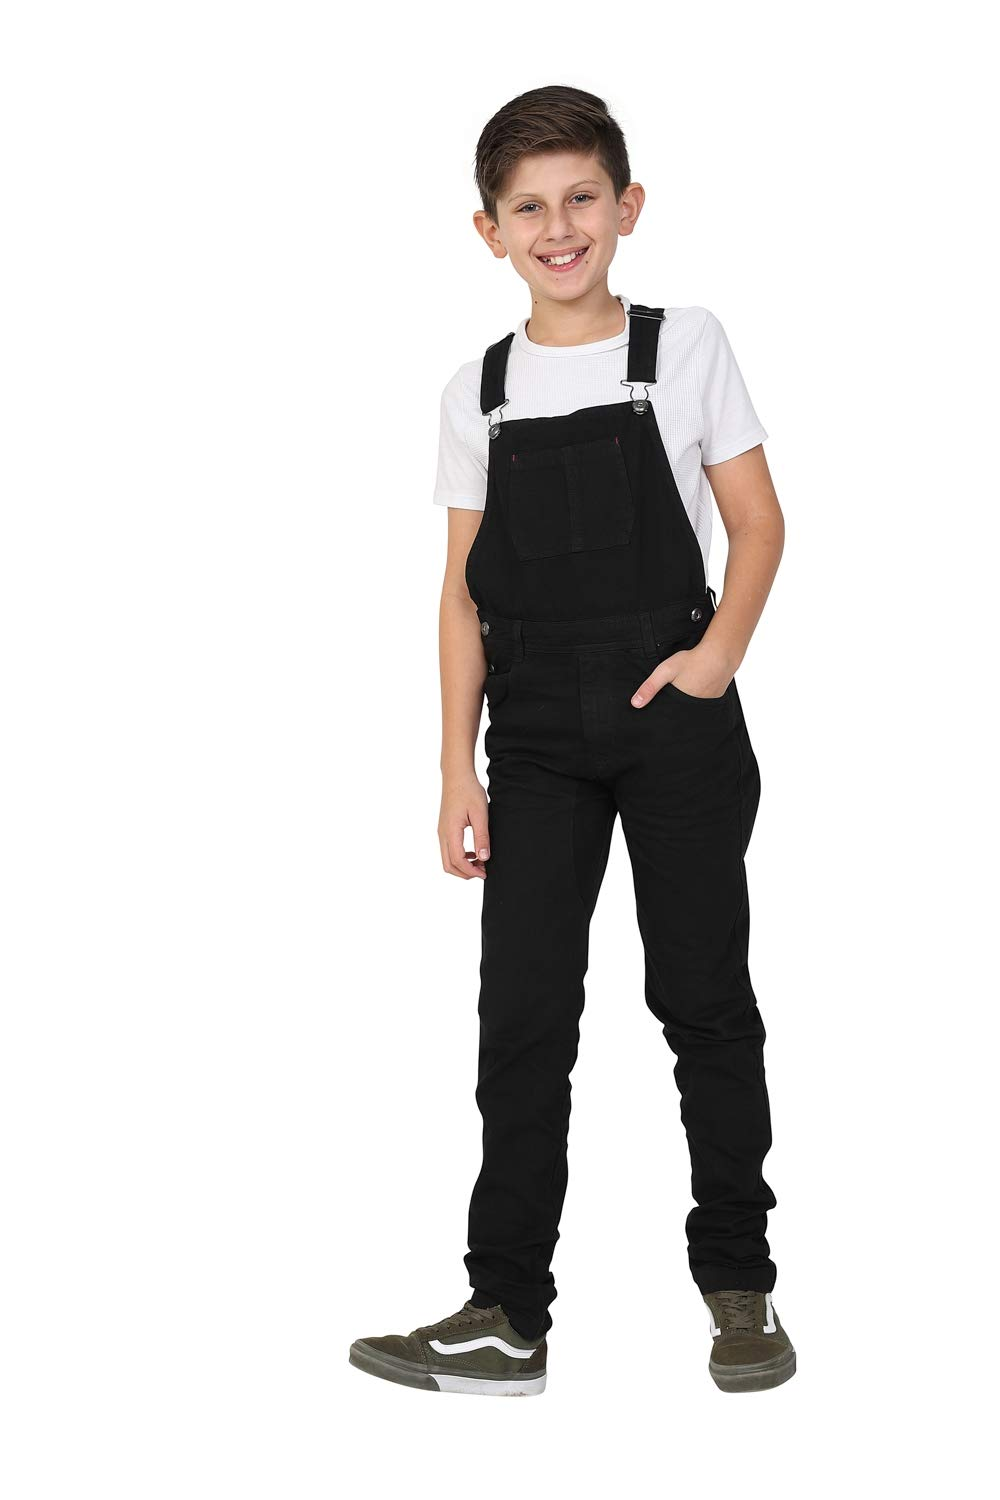 Wash Clothing Company Boys Slim Fit Black Bib-Overalls Age 4-14 Years Kids Dungarees